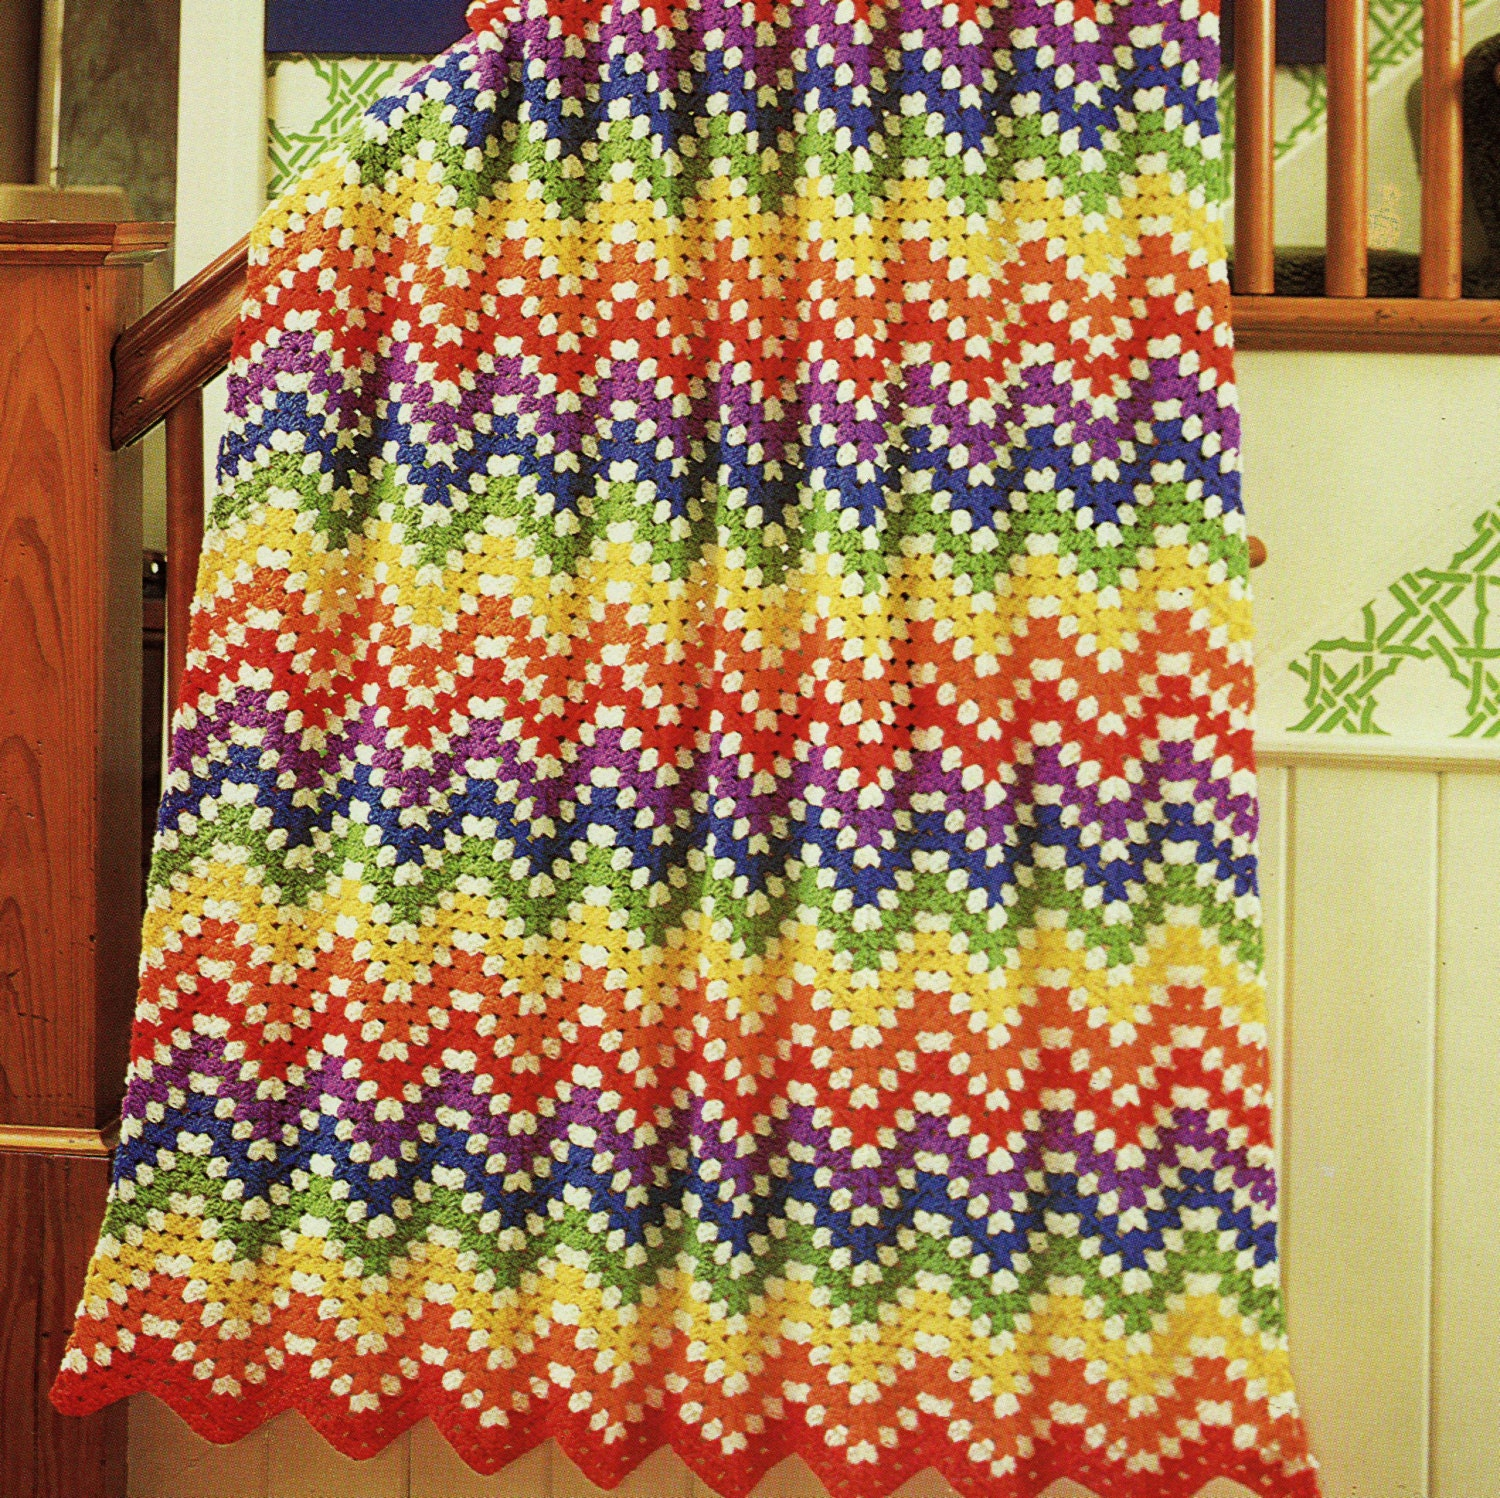 Crochet Afghan Patterns By Tina Gibbons